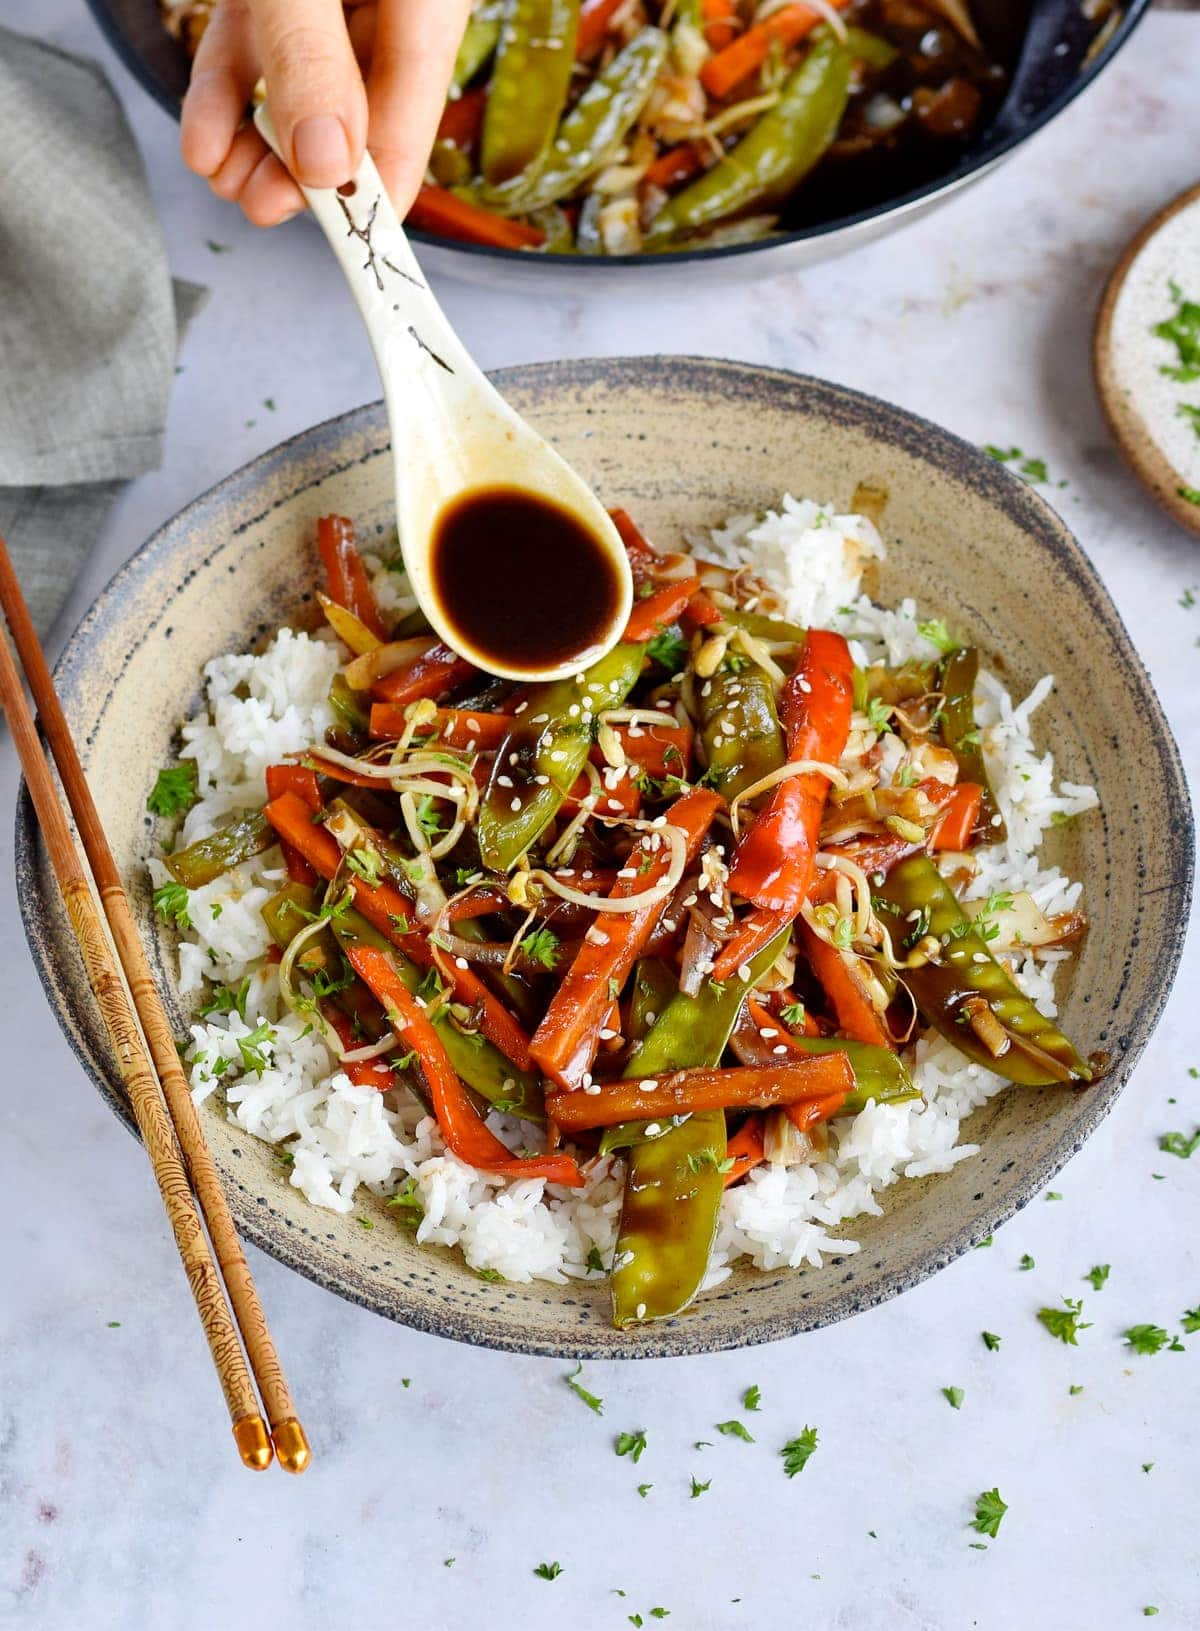 pouring brown sauce over vegetable chop suey